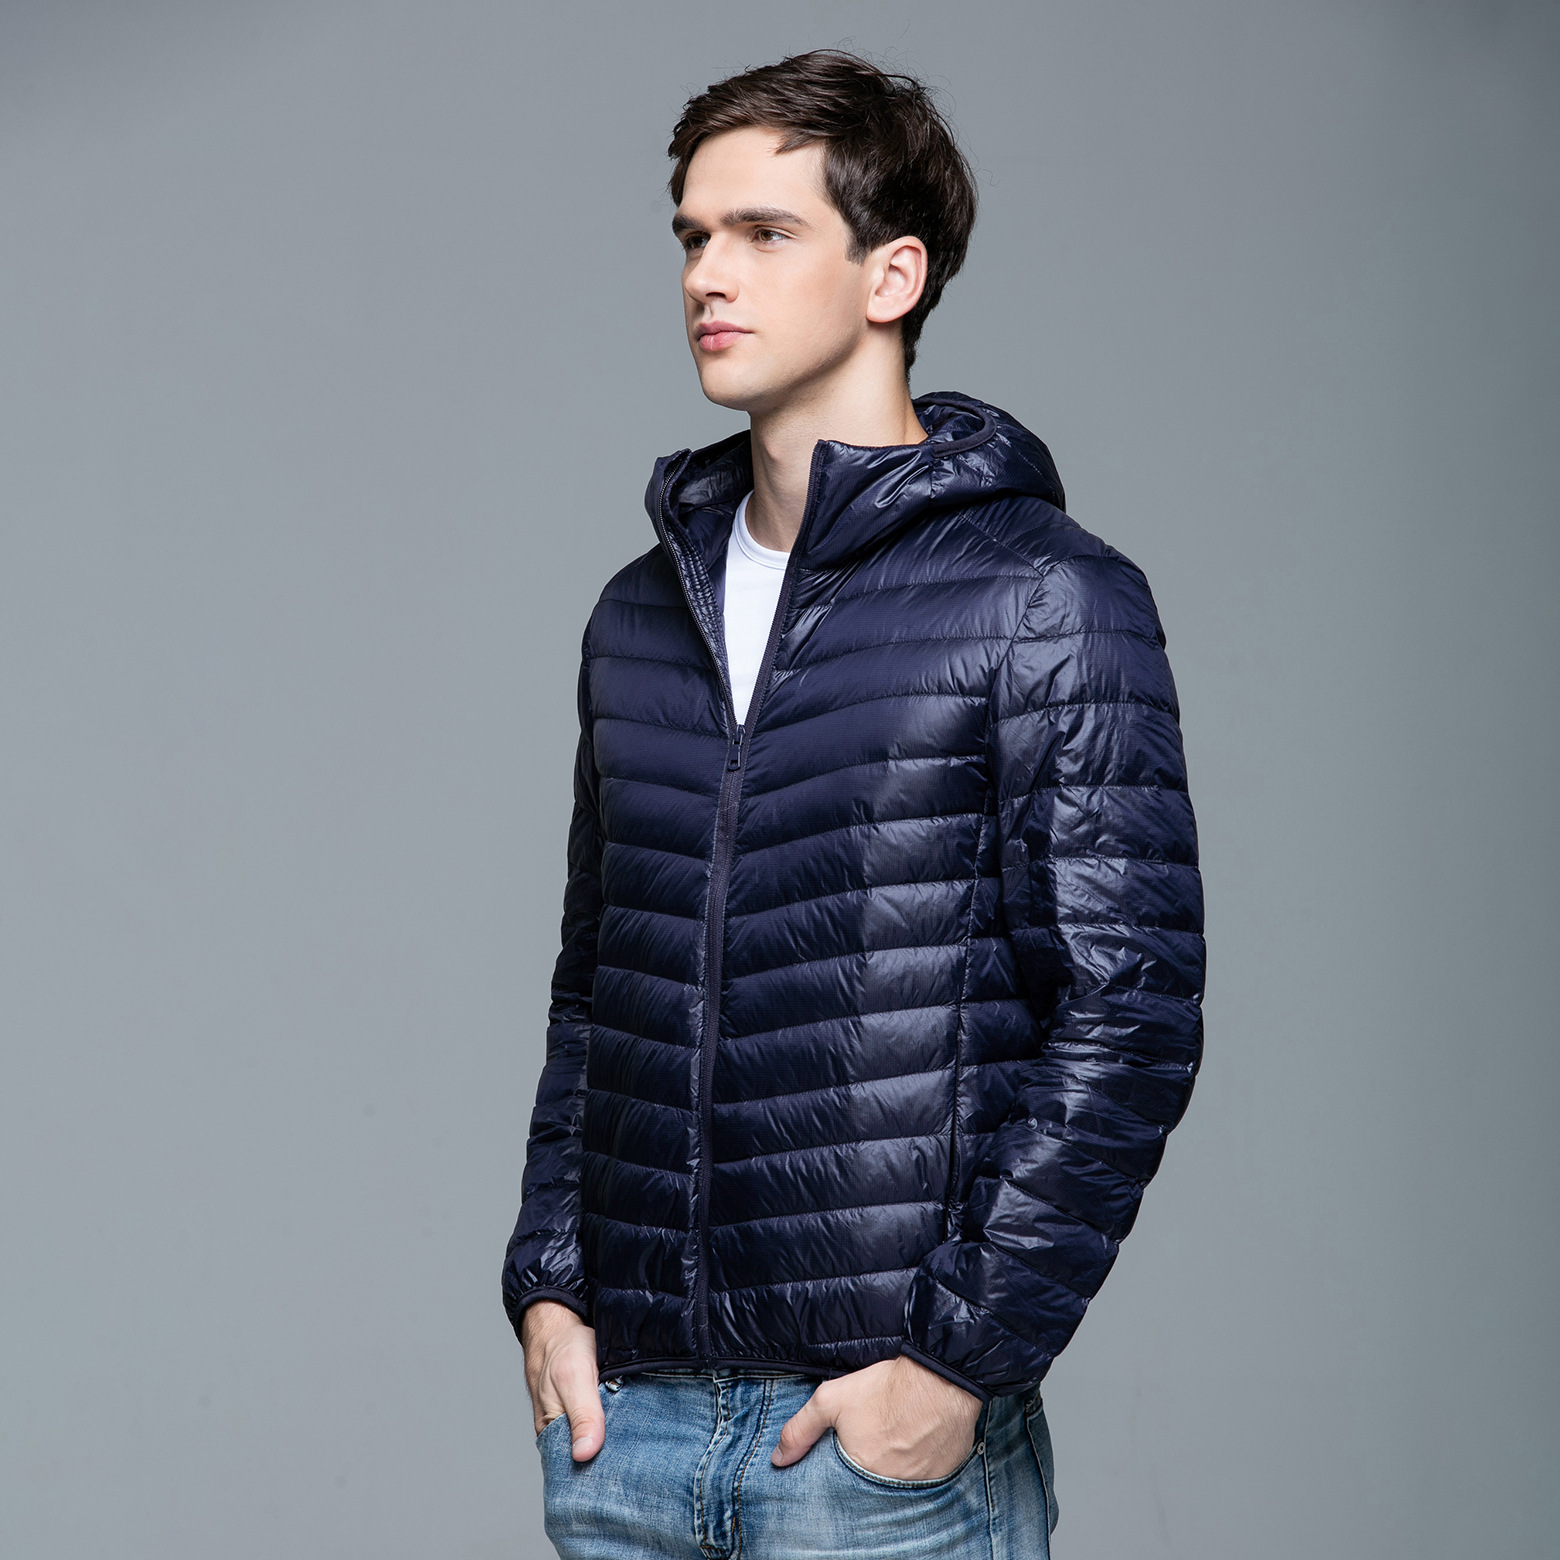 2019 Autumn And Winter New Style Thin Down Jacket Men's Hooded Youth Men Casual Large Size Winter Coat